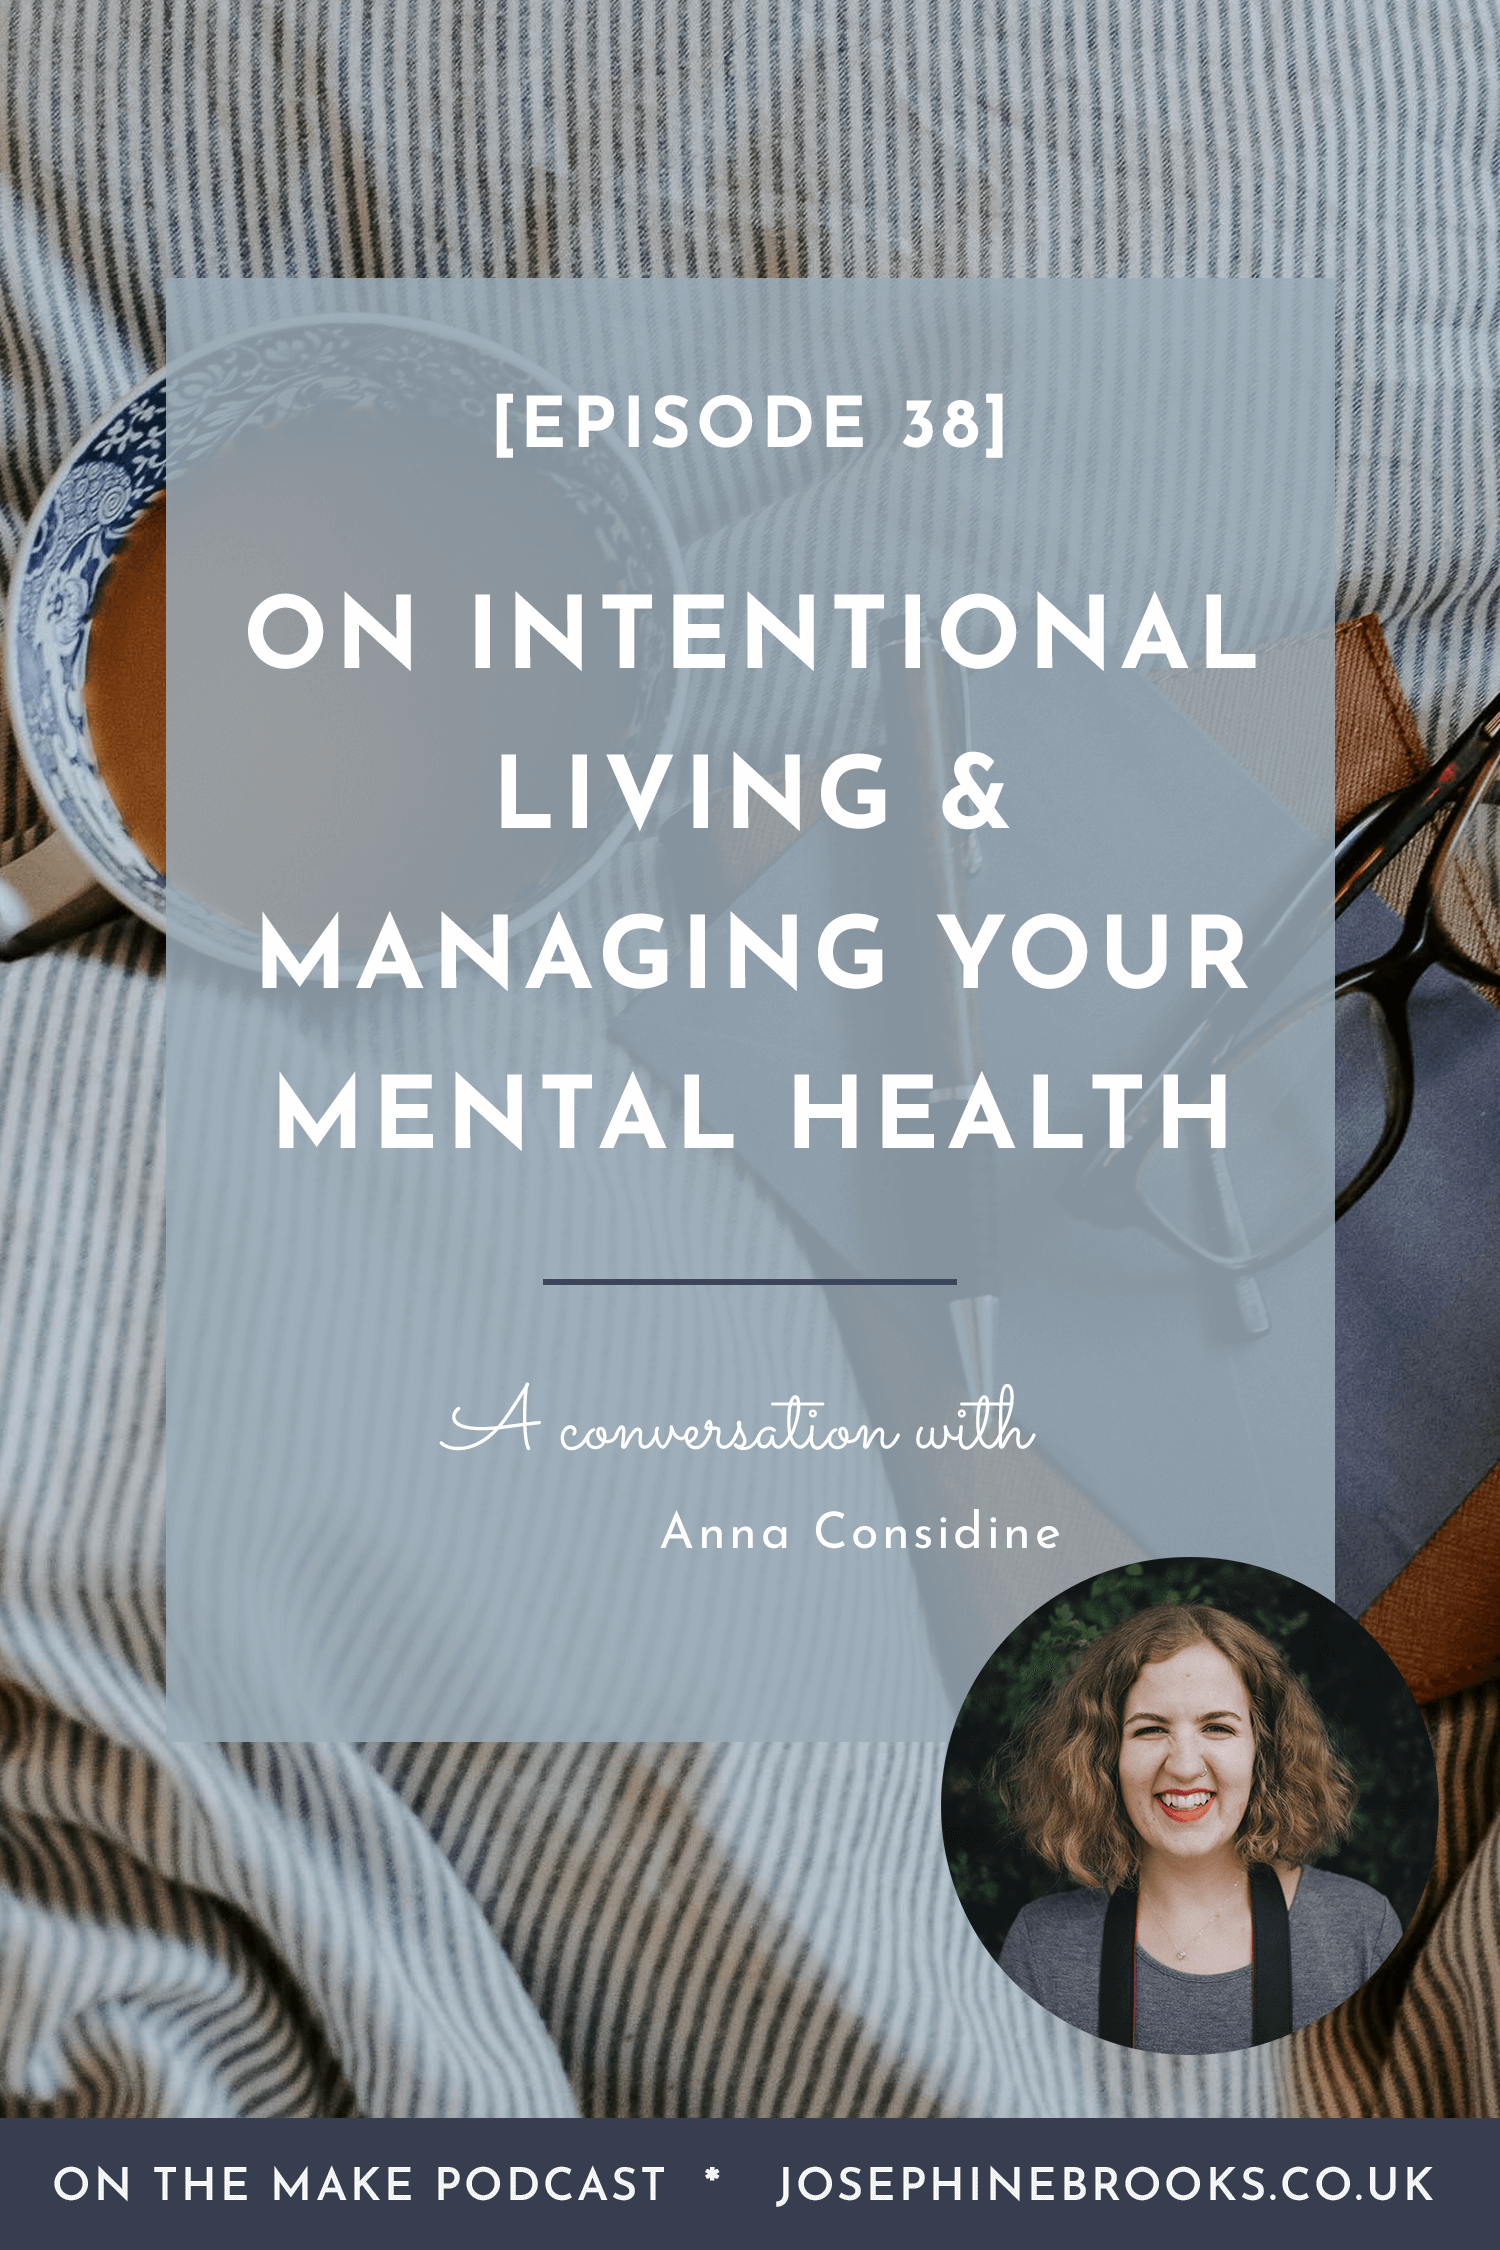 On Intentional Living and manageing your mental health with Anna Considine - episode 38 of On The Make podcast hosted by Josephine Brooks